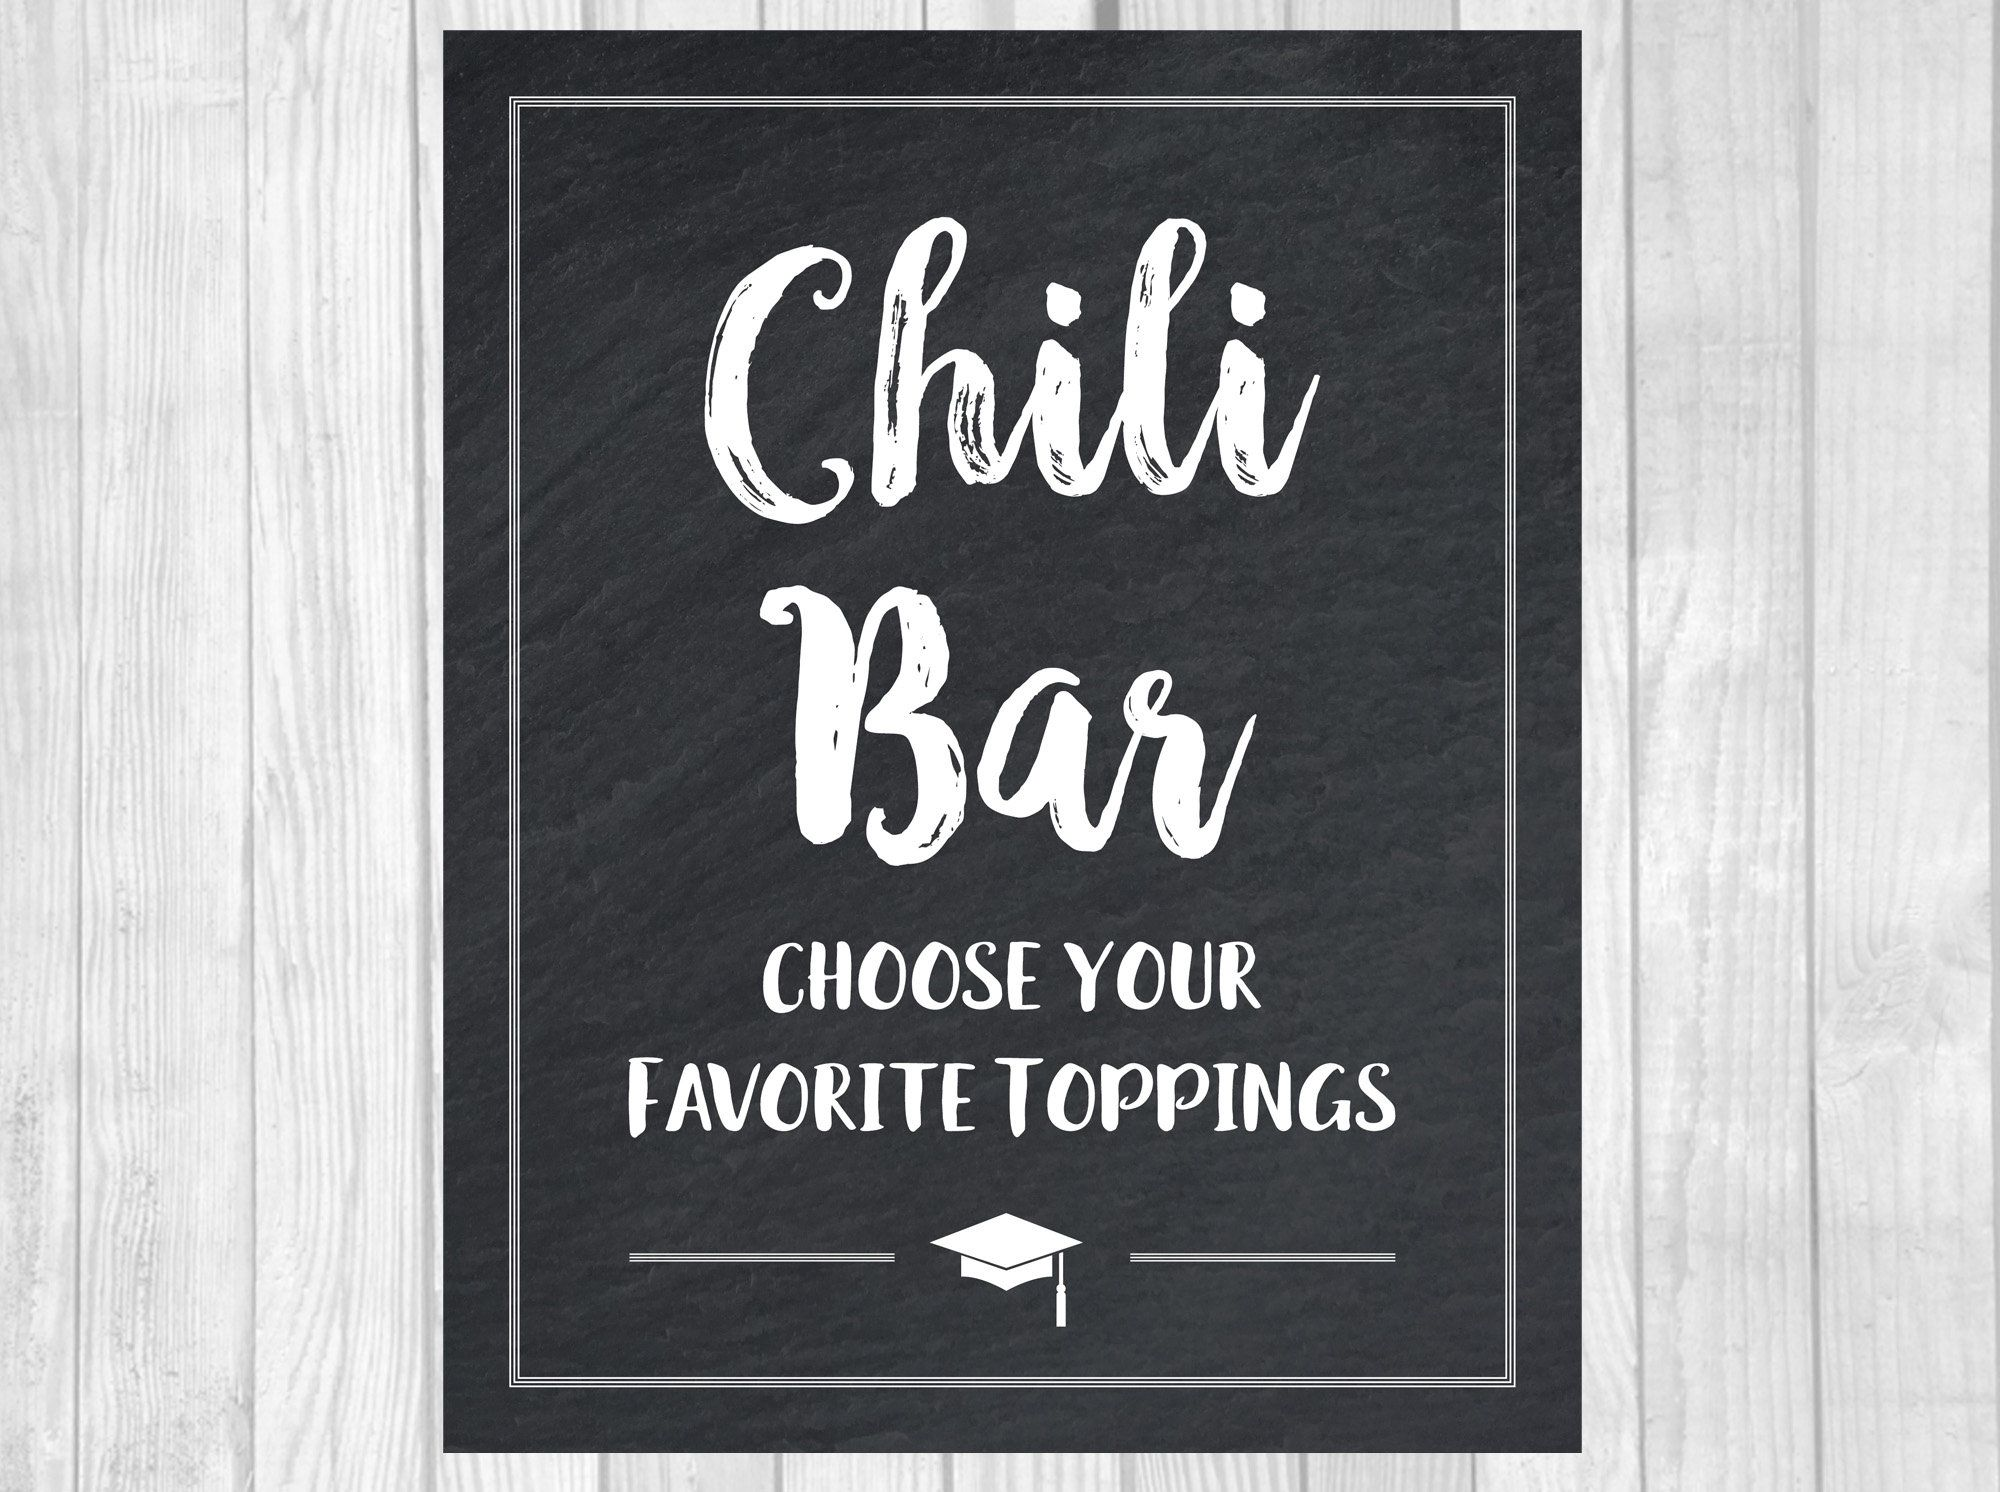 Graduation Party Chili Bar 5x7 or 8x10 Printable Chalkboard Food Sign, Choose Your Toppings, Class of 2019, Class of 2020, Instant Download #chilibar